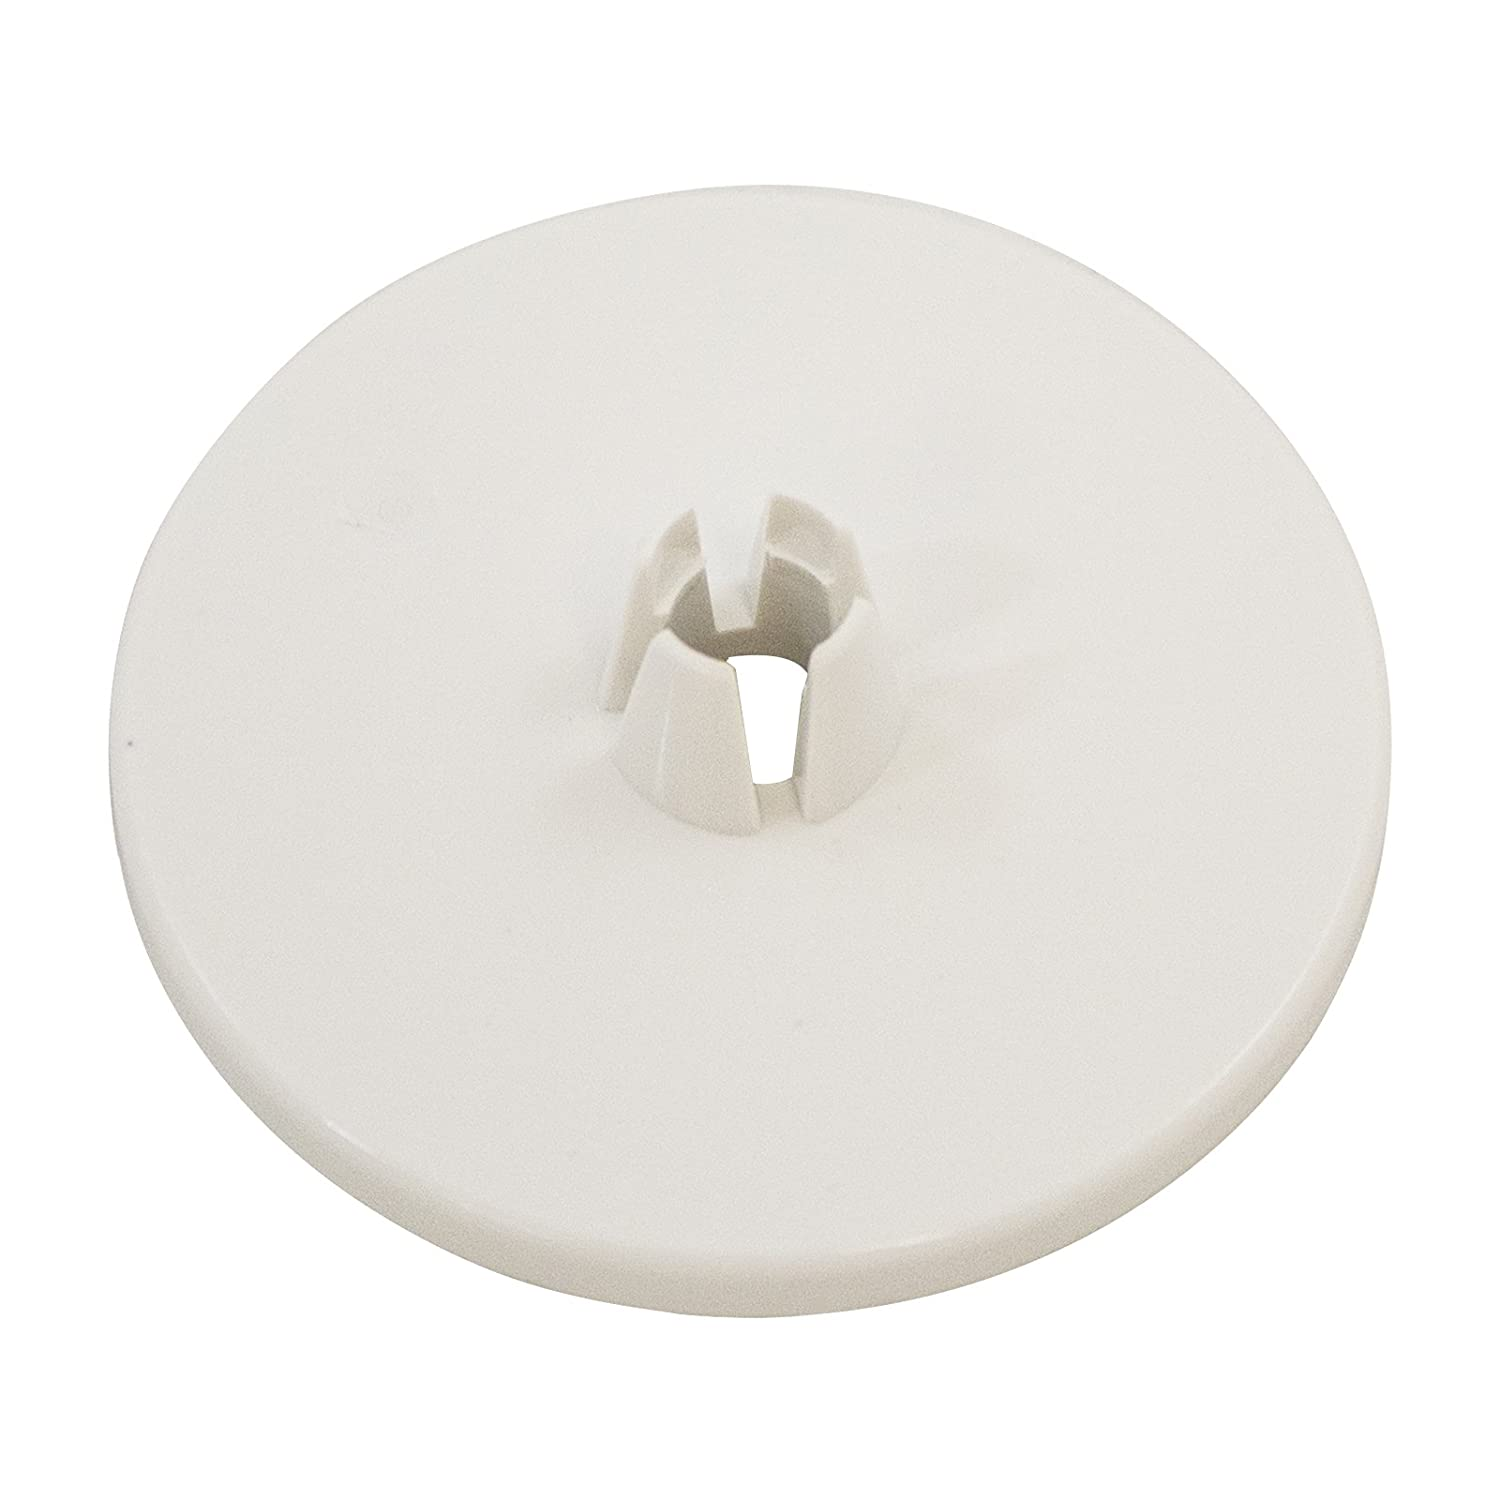 Janome Large Spool Holder Cap by Janome